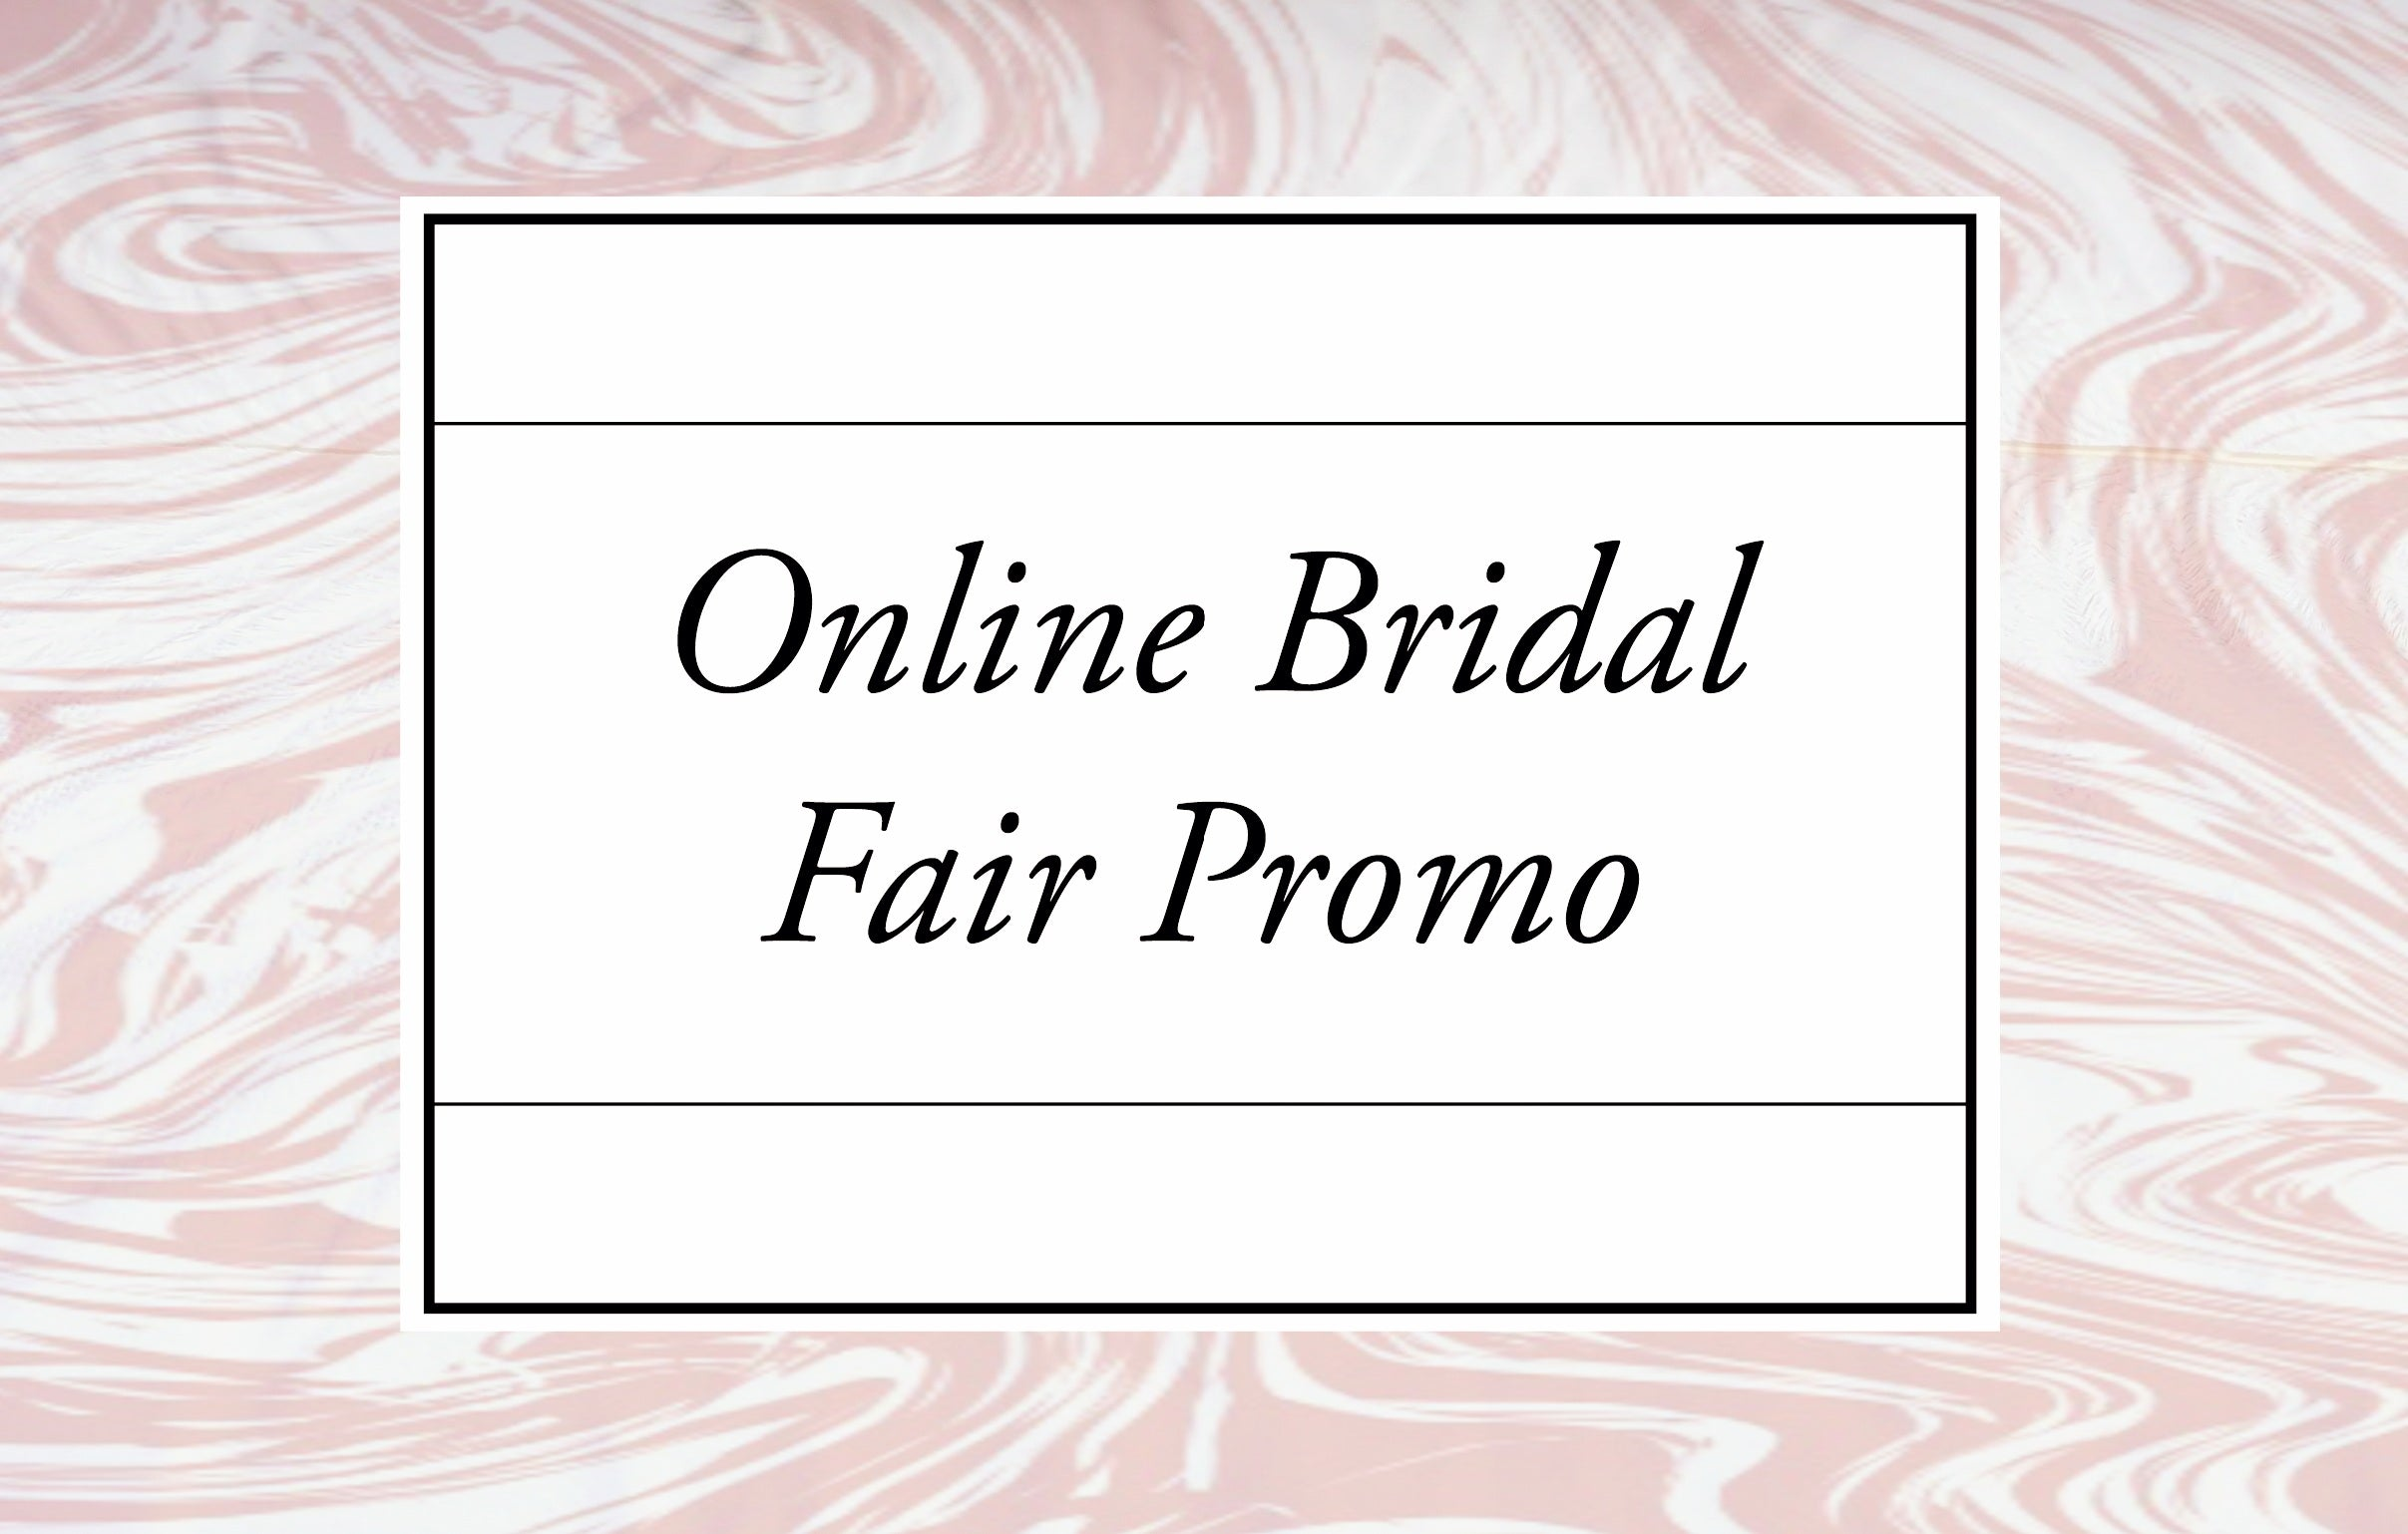 Online Bridal Fair Promo